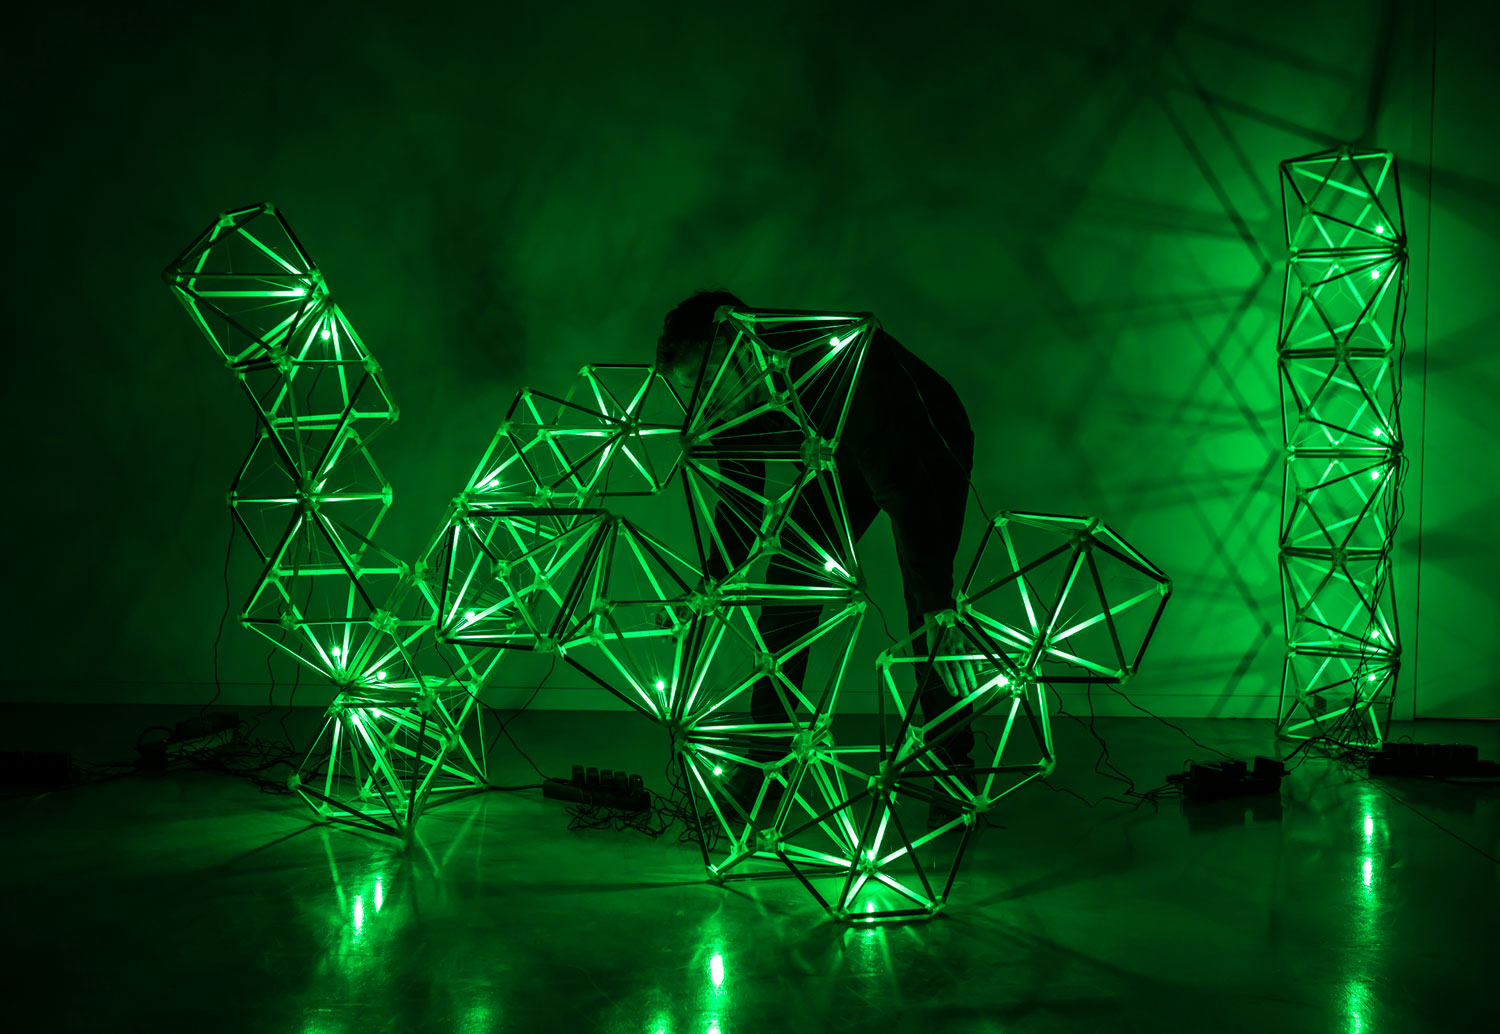 Green Light An Artistic Workshop by Studio Olafur Eliasson at Venice Biennale 2017   Yellowtrace